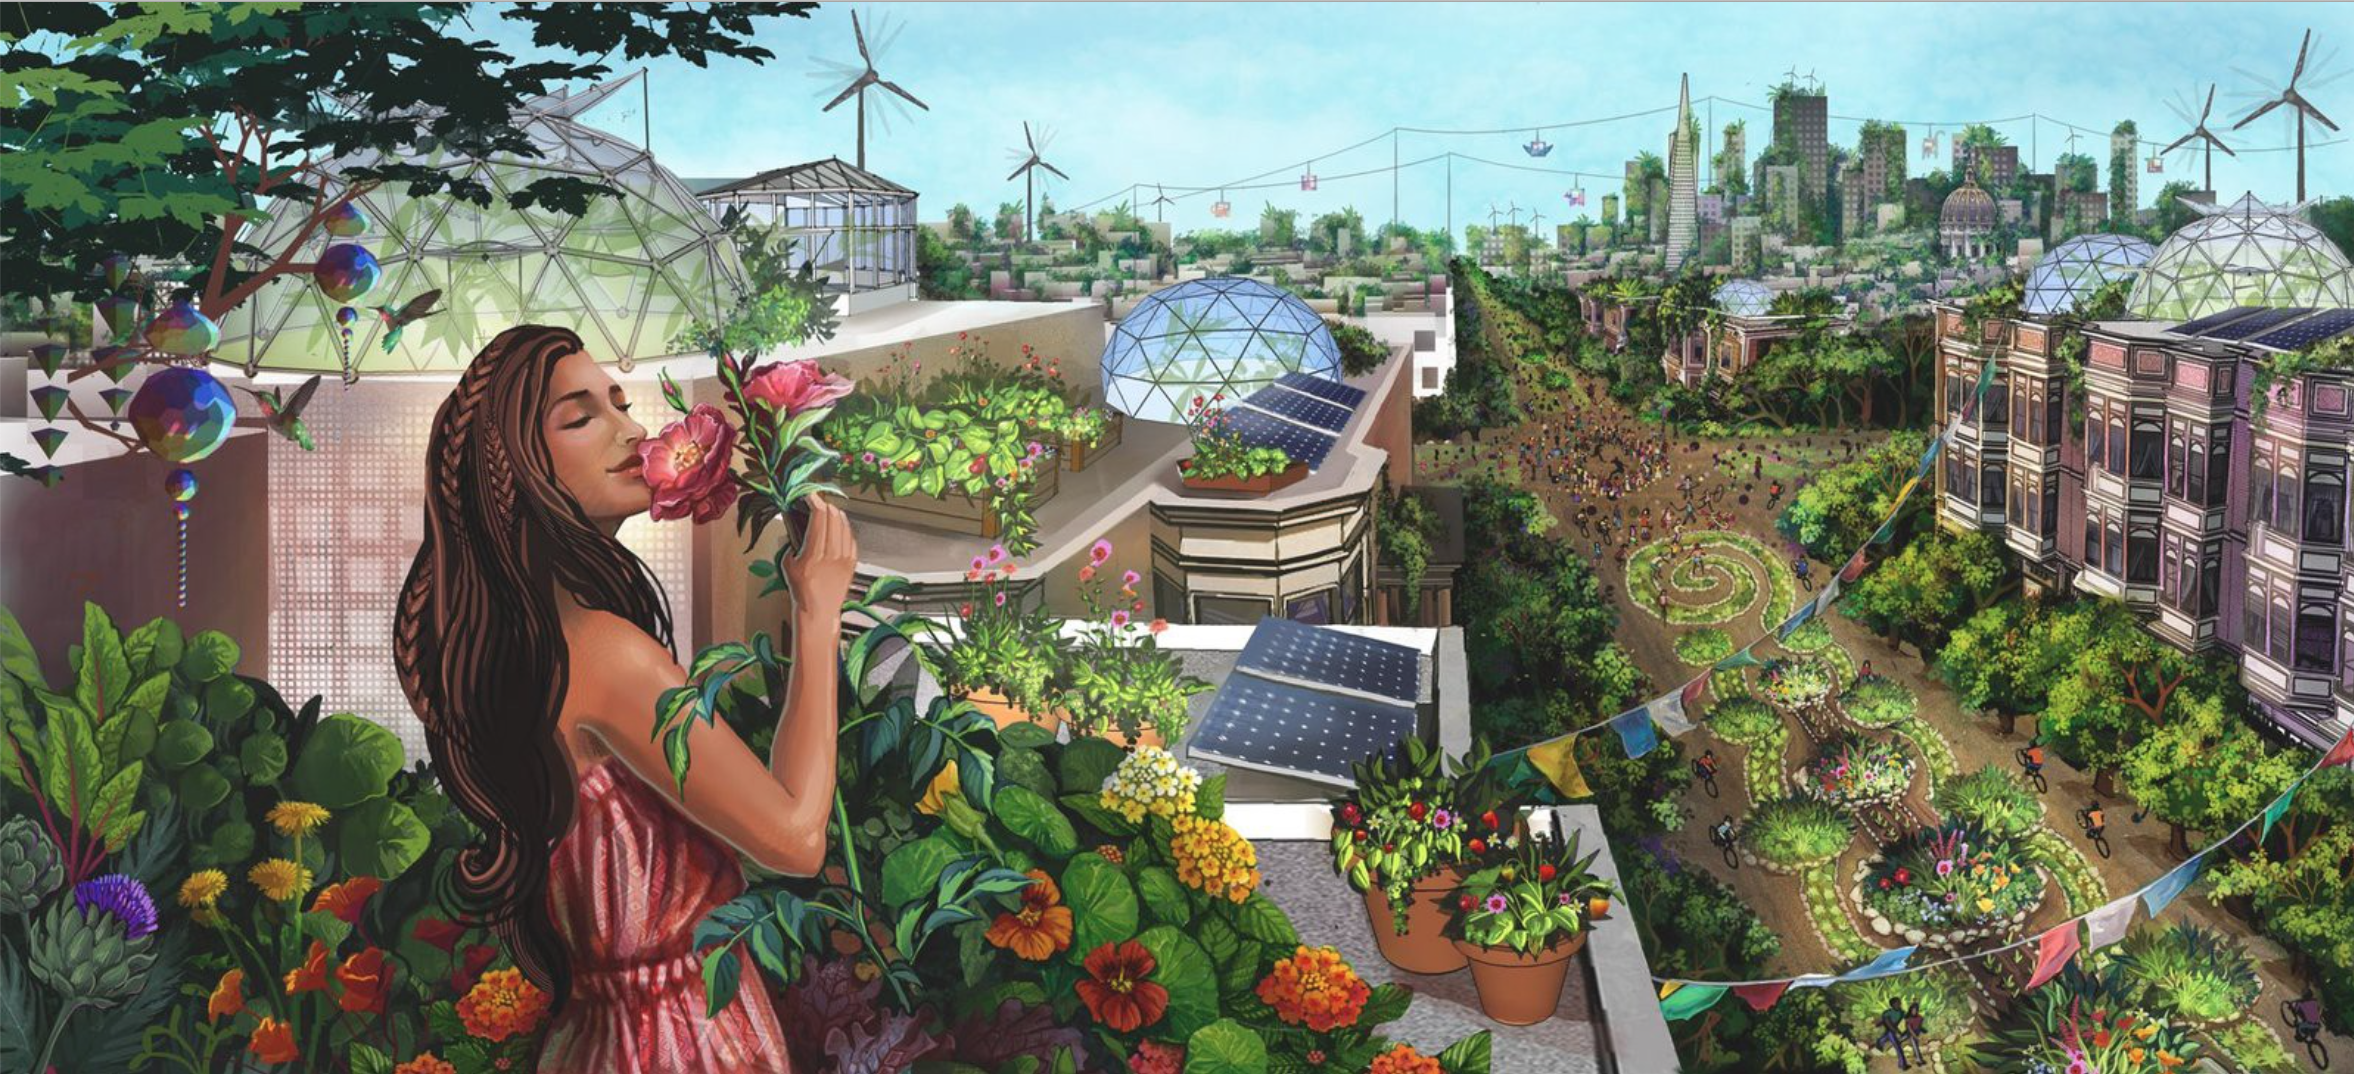 Woman smelling flowers against a vibrant community backdrop of gardens, greenhouses, wind turbines and solar panels